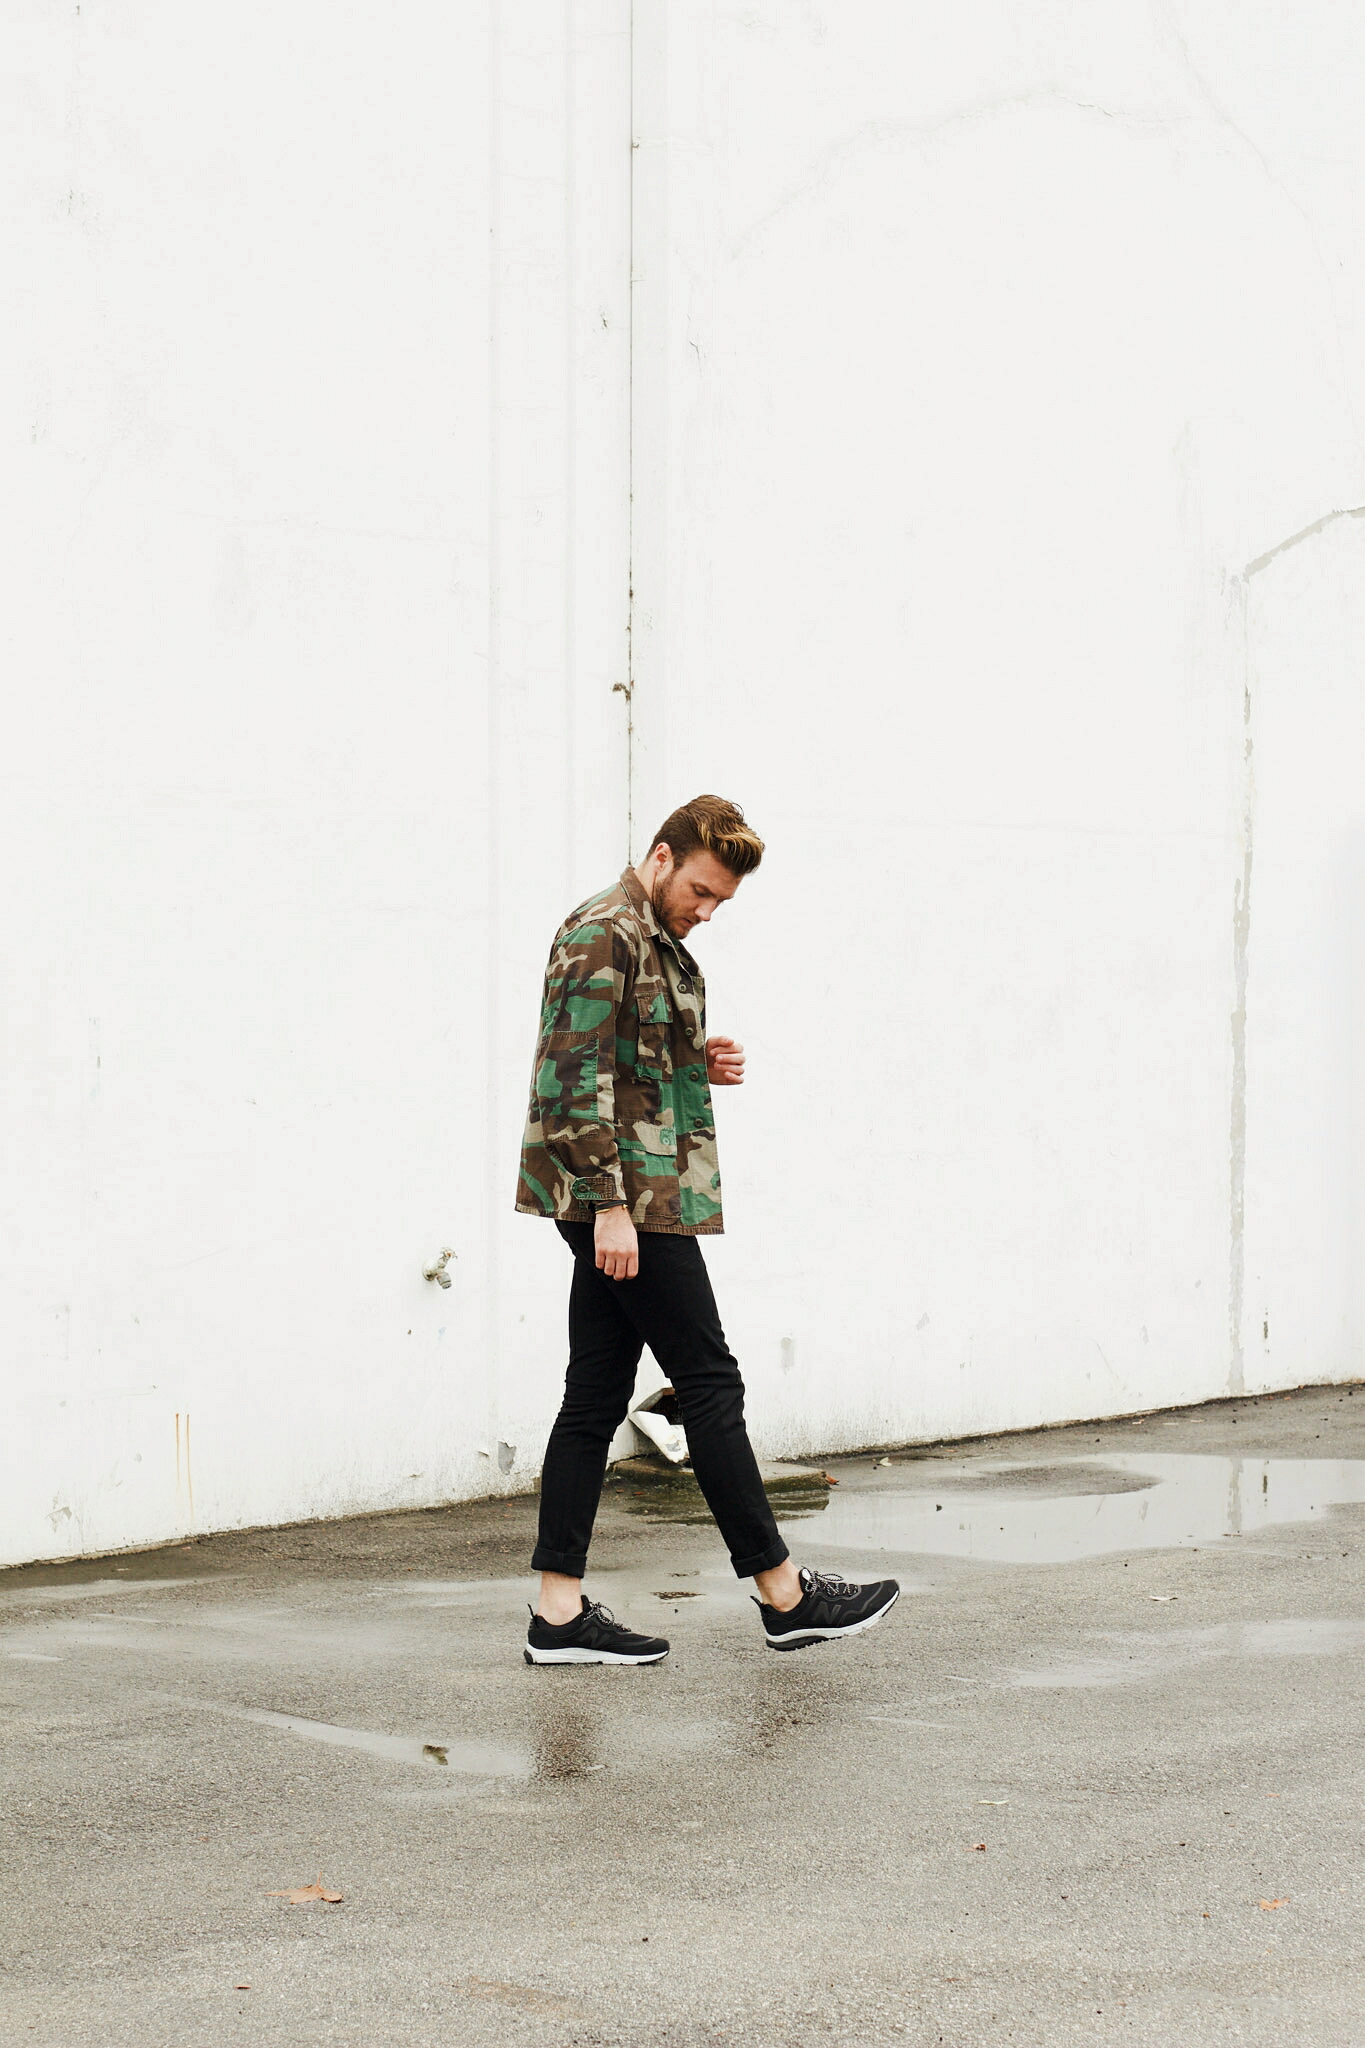 Vintage Camo Jacket and Sneakers 10